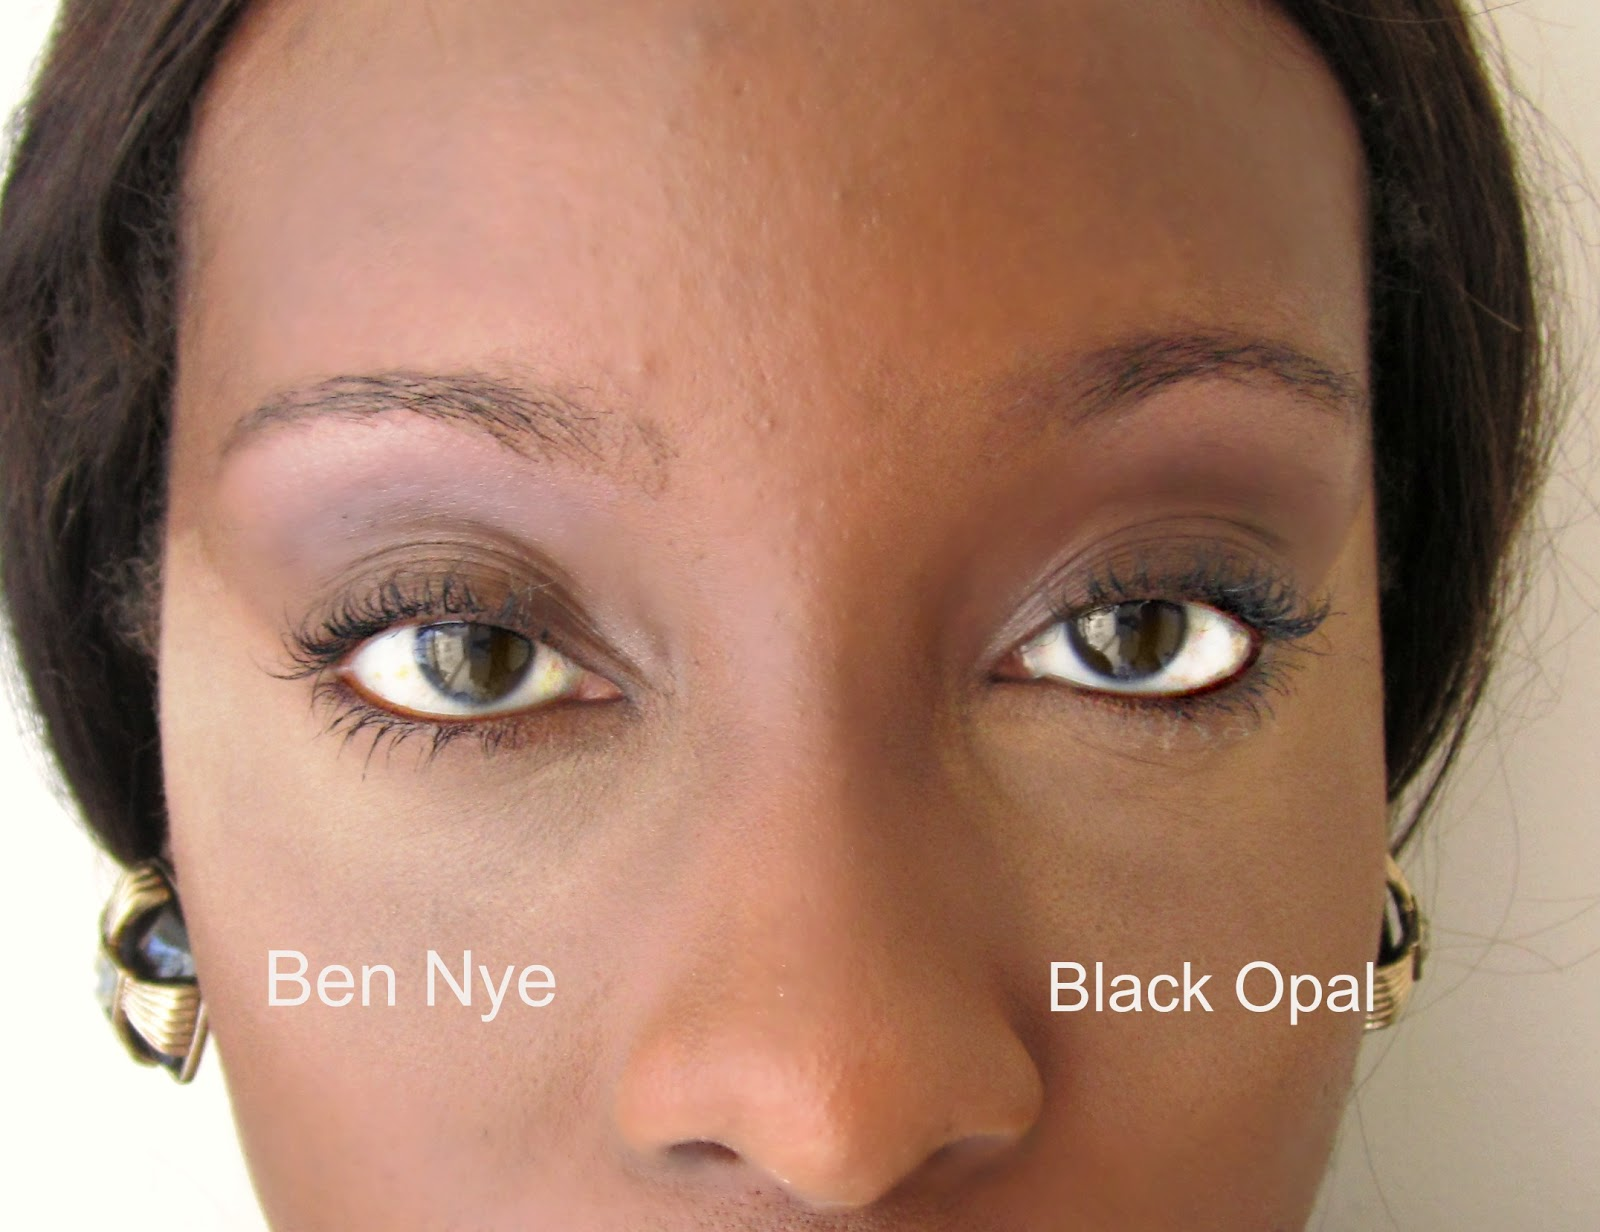 How to Use Ben Nye Banana Powder recommend